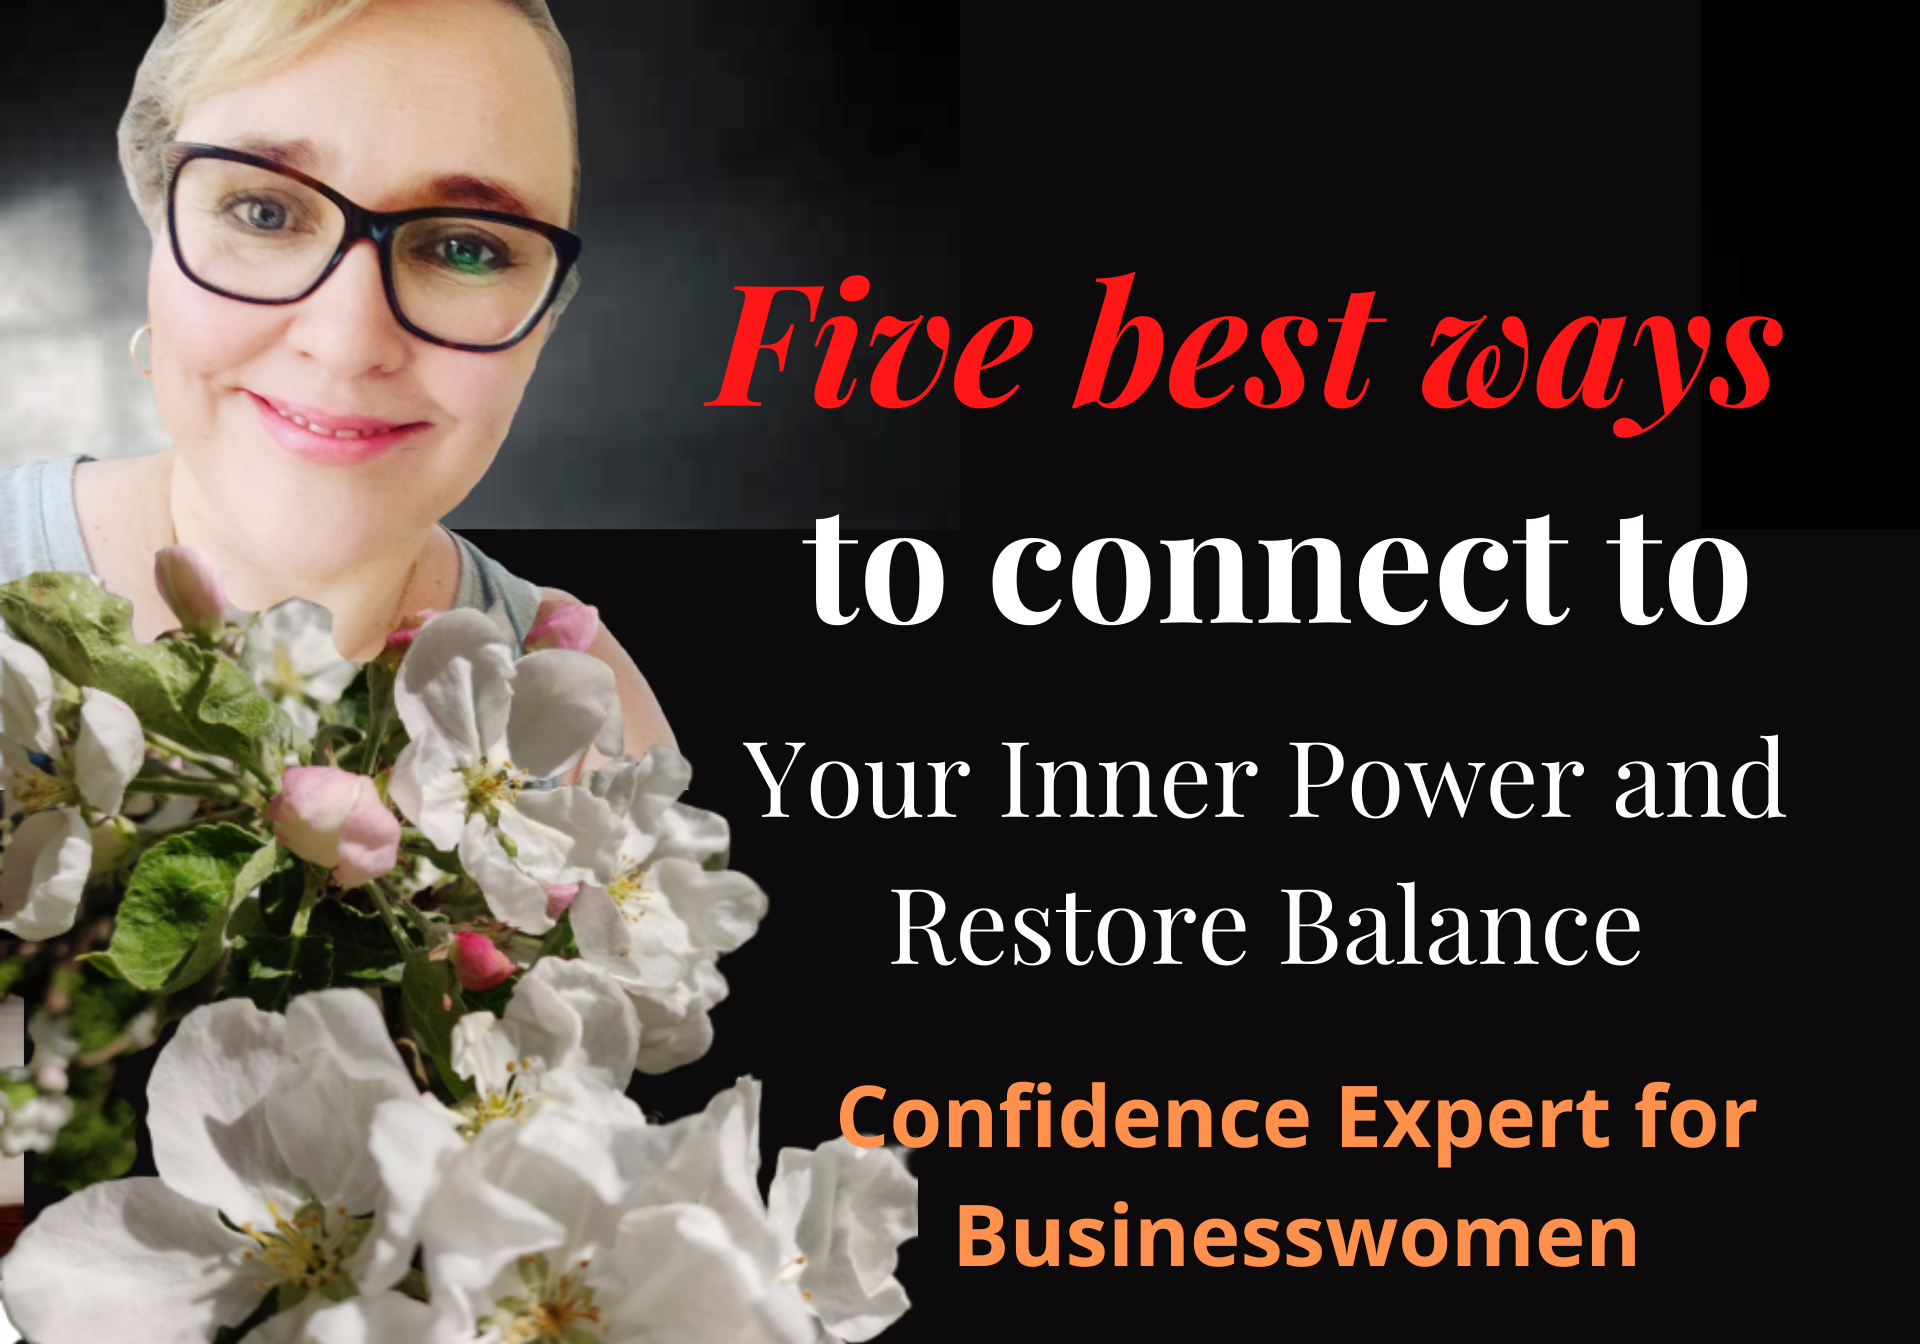 5 Best Ways to Raise Vibration and Restore Balance if You are Struggling Emotionally or Spiritually